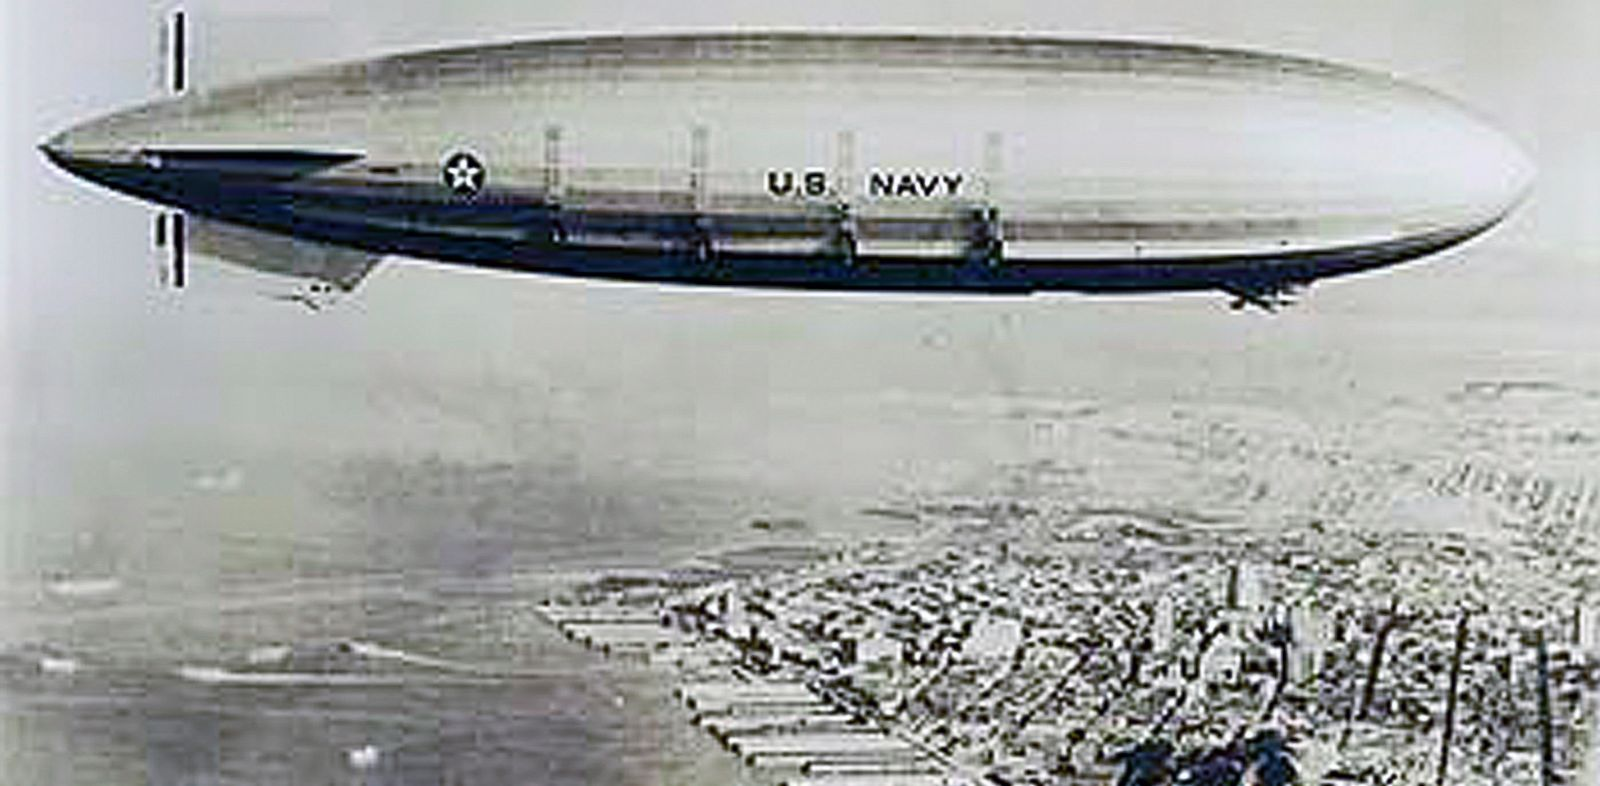 PHOTO: The USS Macon is seen flying over the city of San Francisco in the early 1930s.